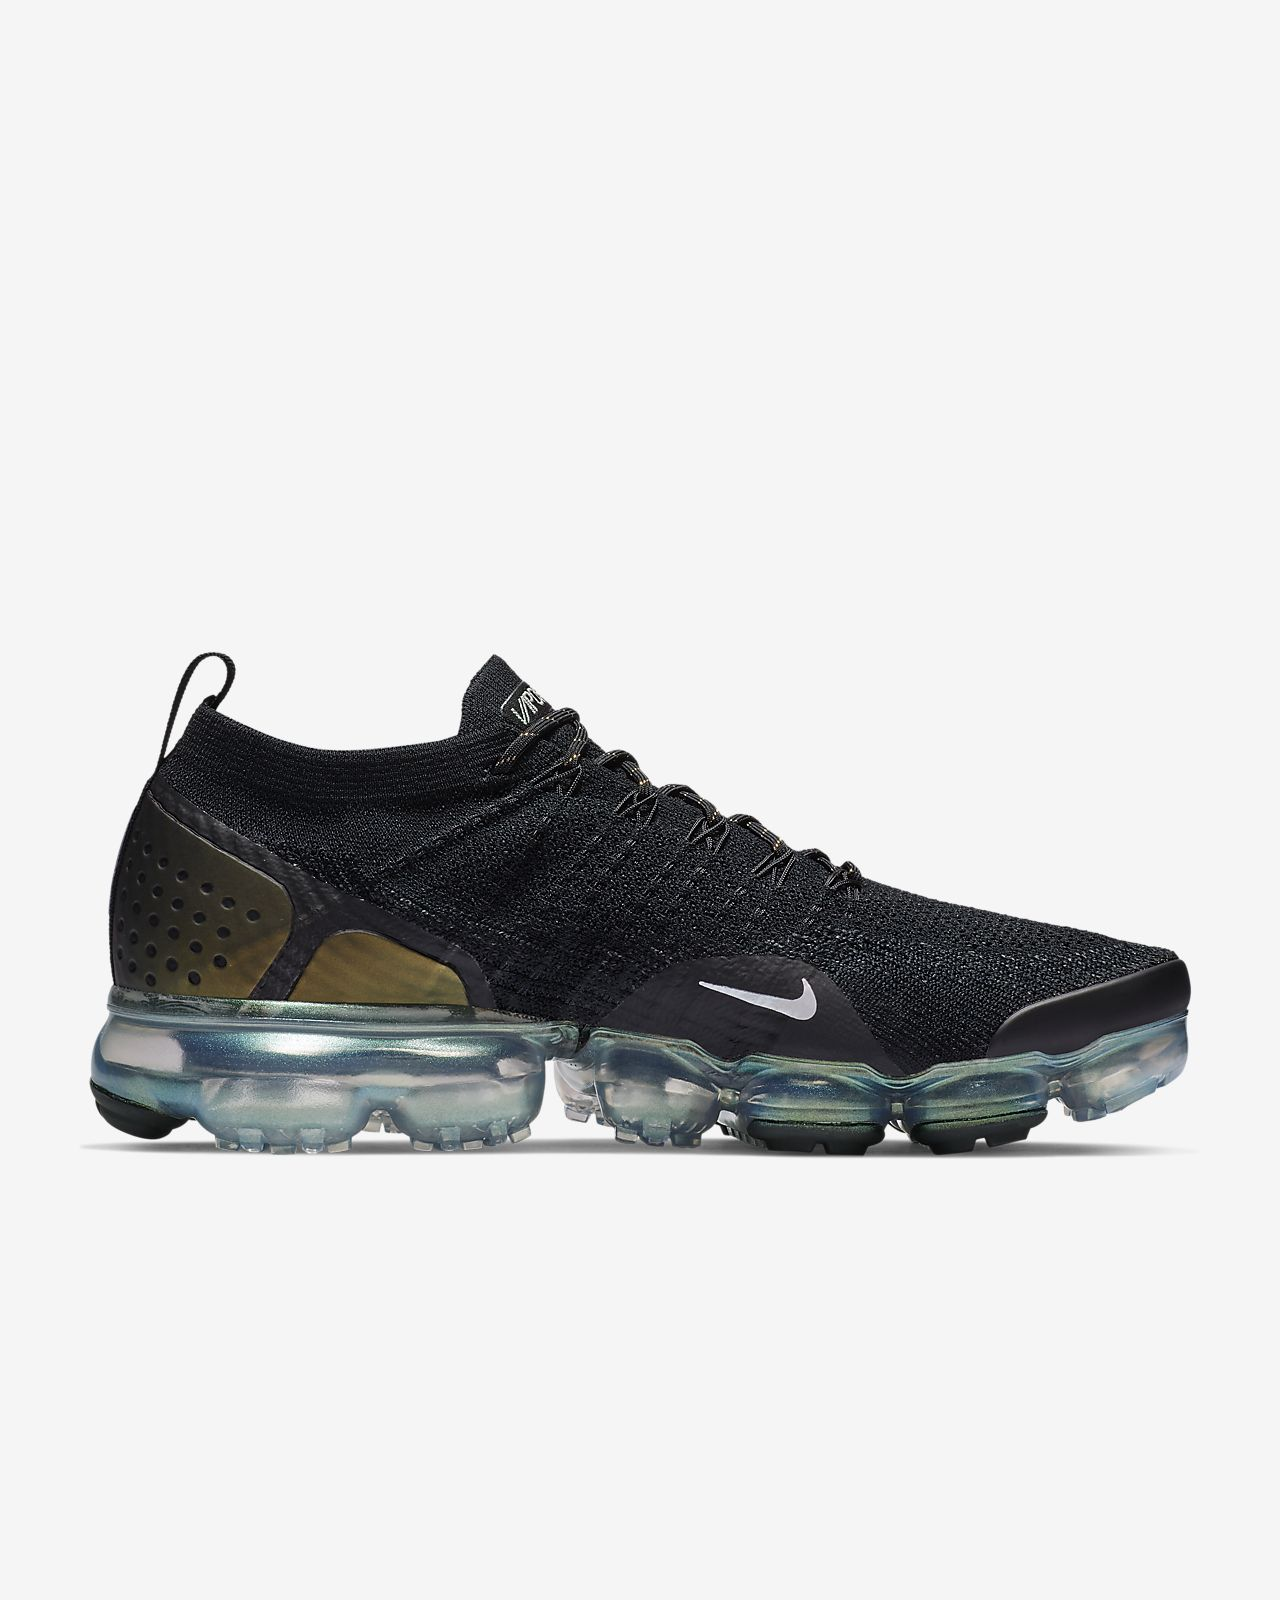 online store 233a4 27d11 Low Resolution Nike Air VaporMax Flyknit 2 Shoe Nike Air VaporMax Flyknit 2  Shoe